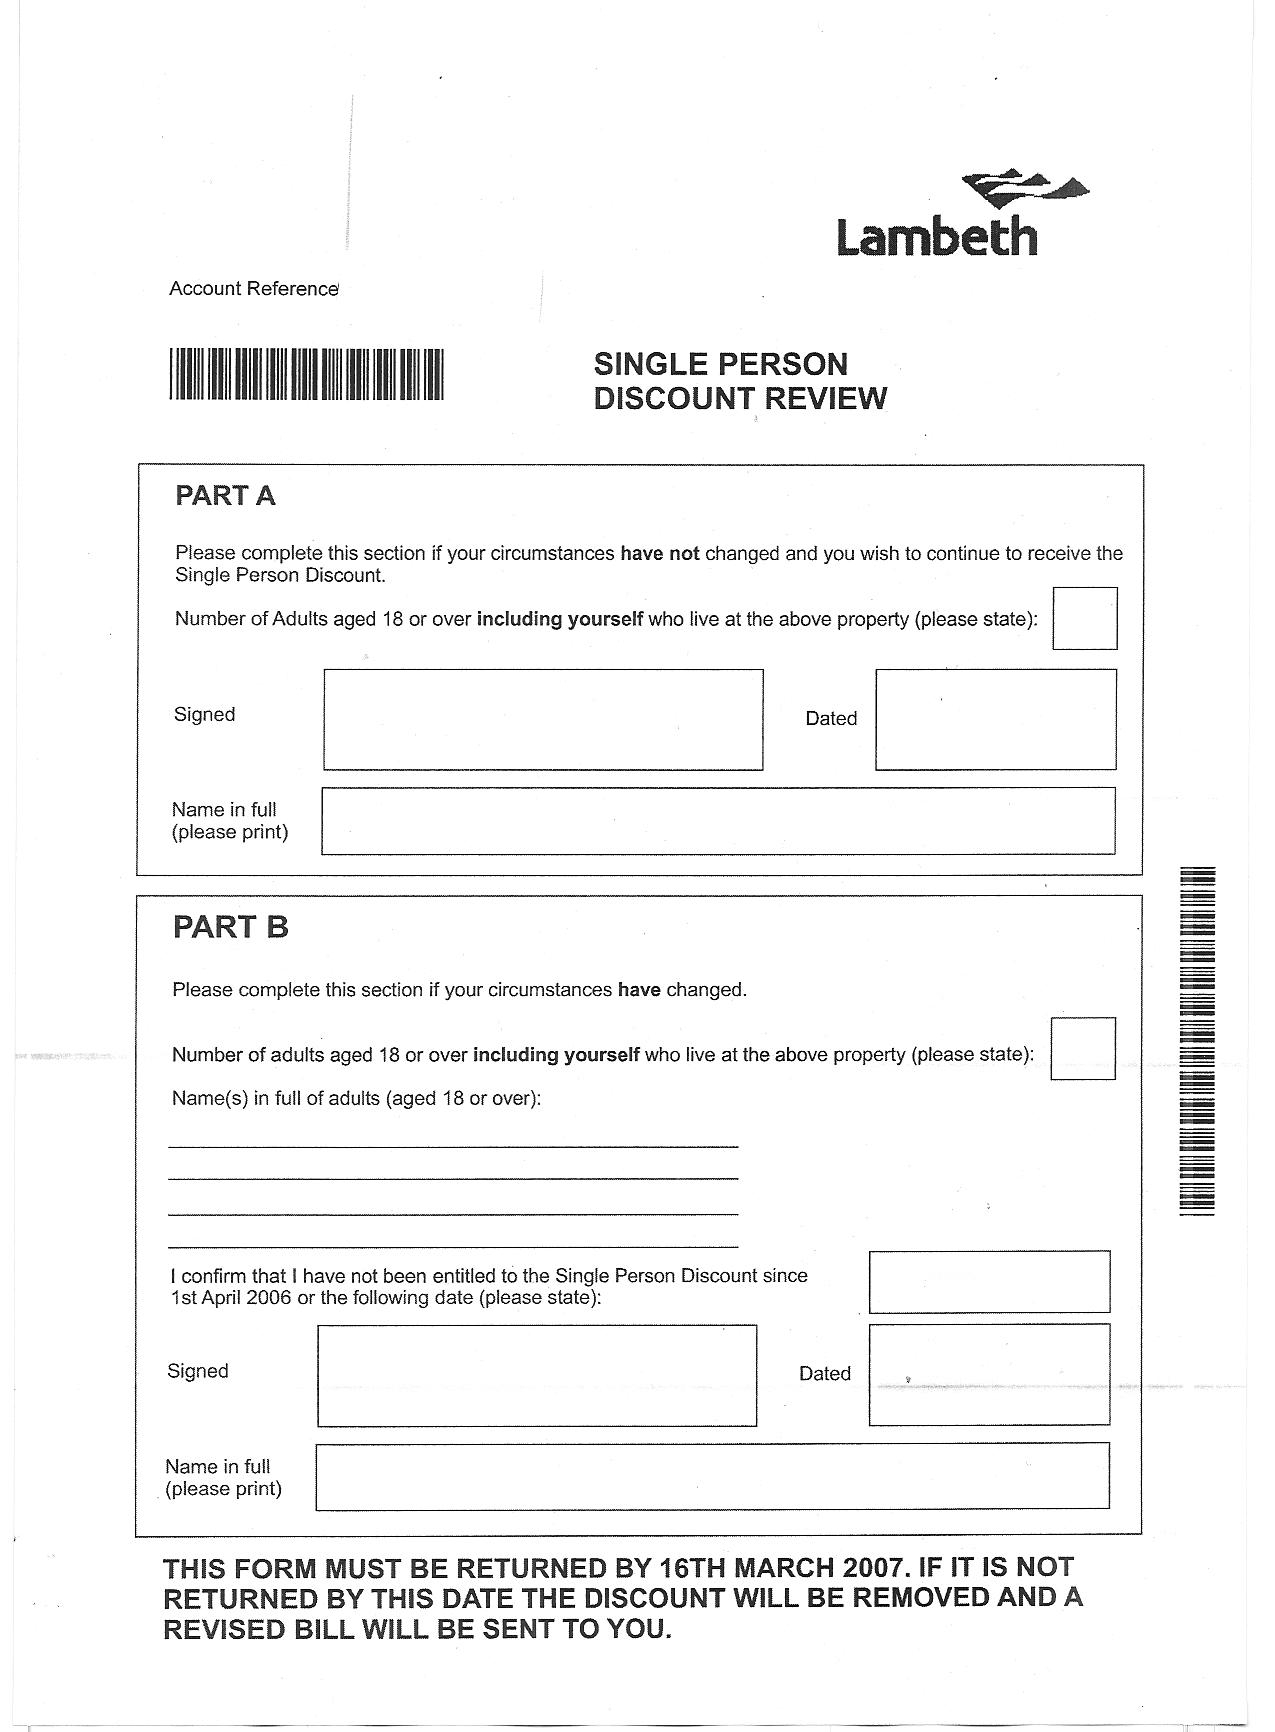 how to pay council tax in lambeth